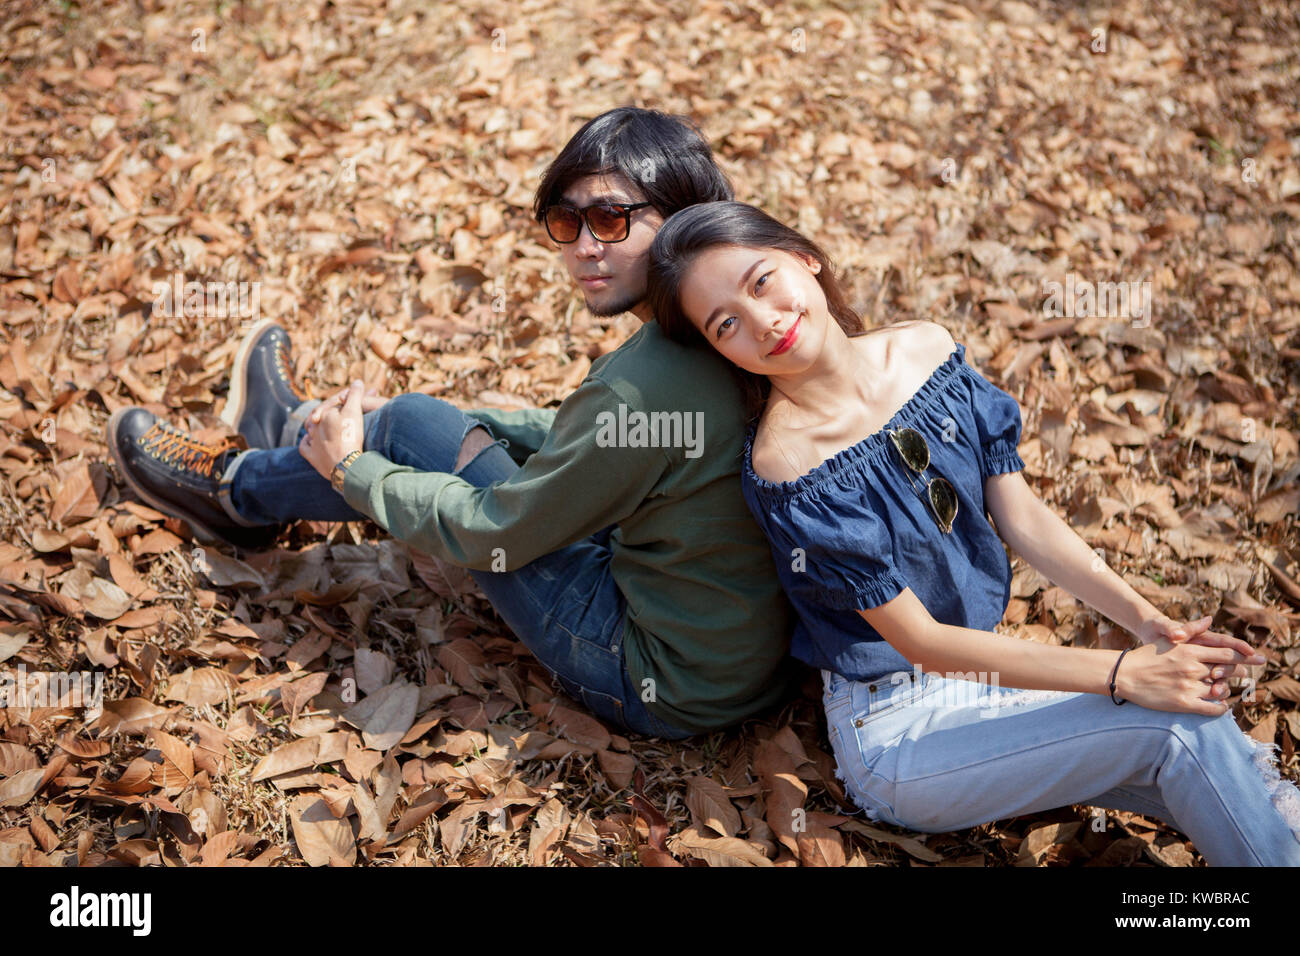 portrait of younger asian man and woman relaxing on dry leaves on ground - Stock Image